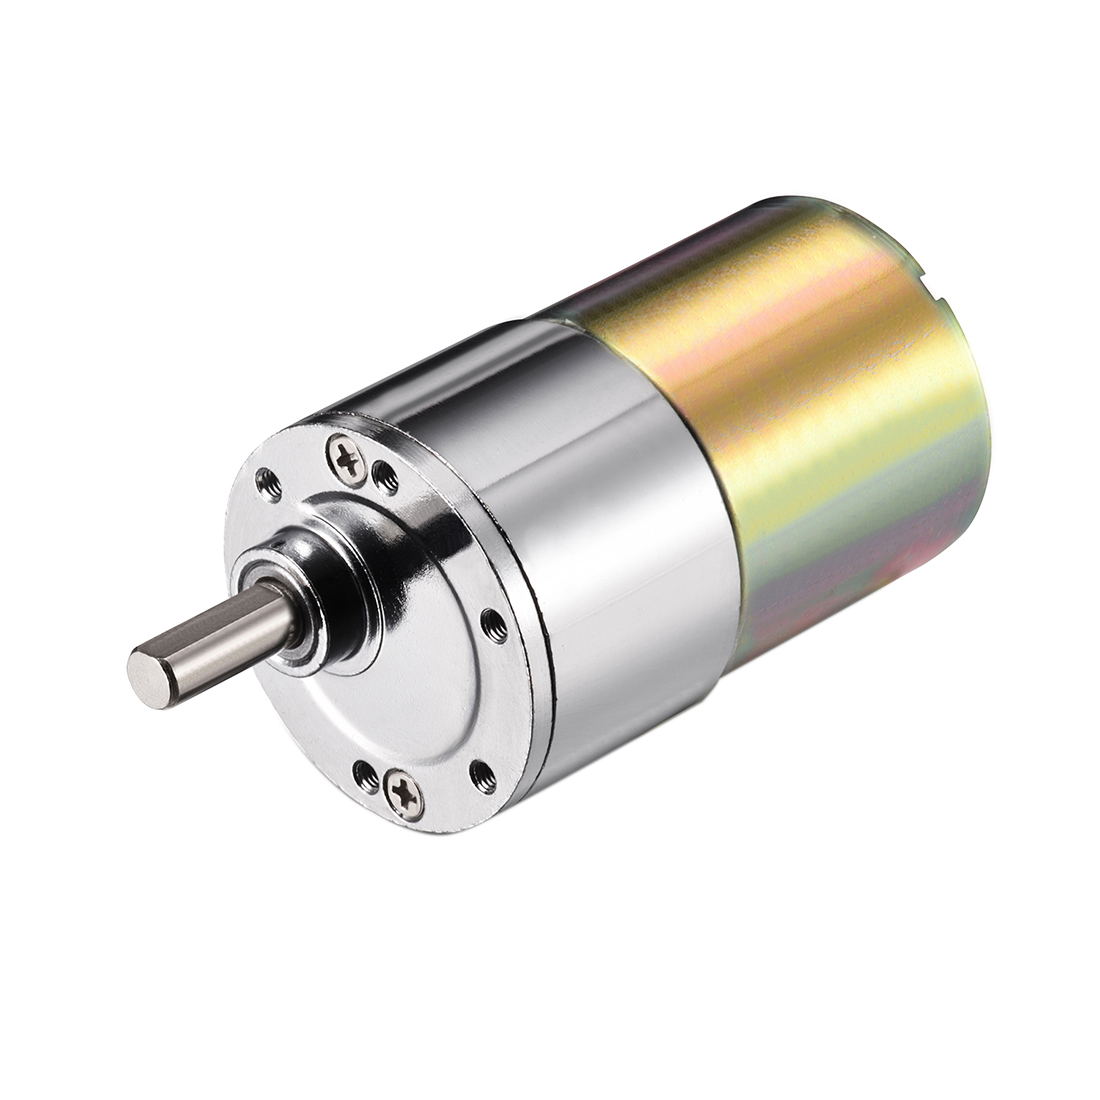 DC 24V 40RPM Micro Gear Box Motor Speed Reduction Electric Gearbox Eccentric Output Shaft